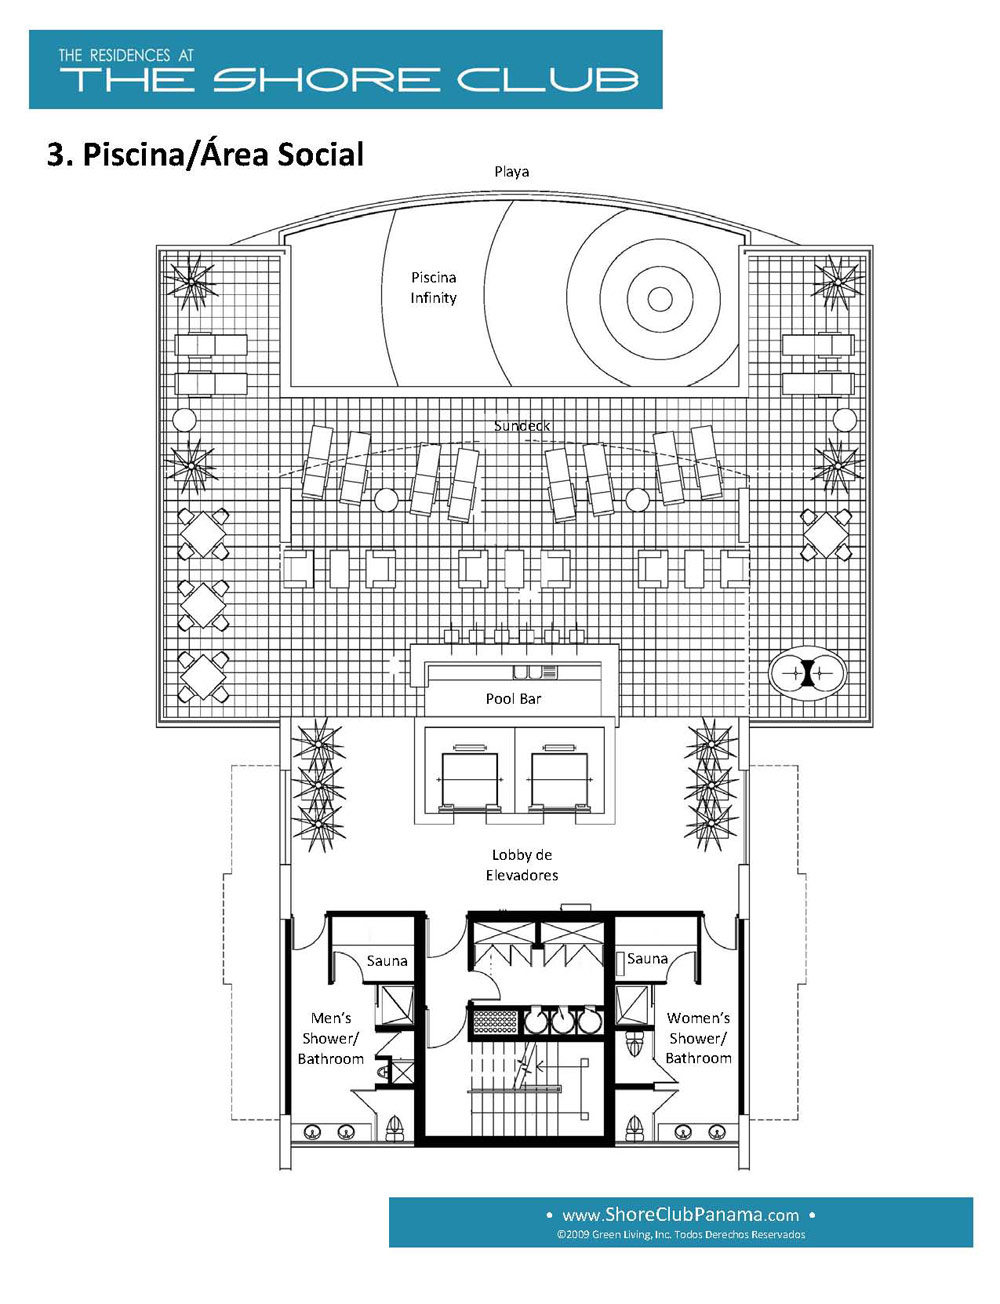 Ad5b99b521814f11fa6447ba86a4c254 on Nightclub Bar Design Floor Plans